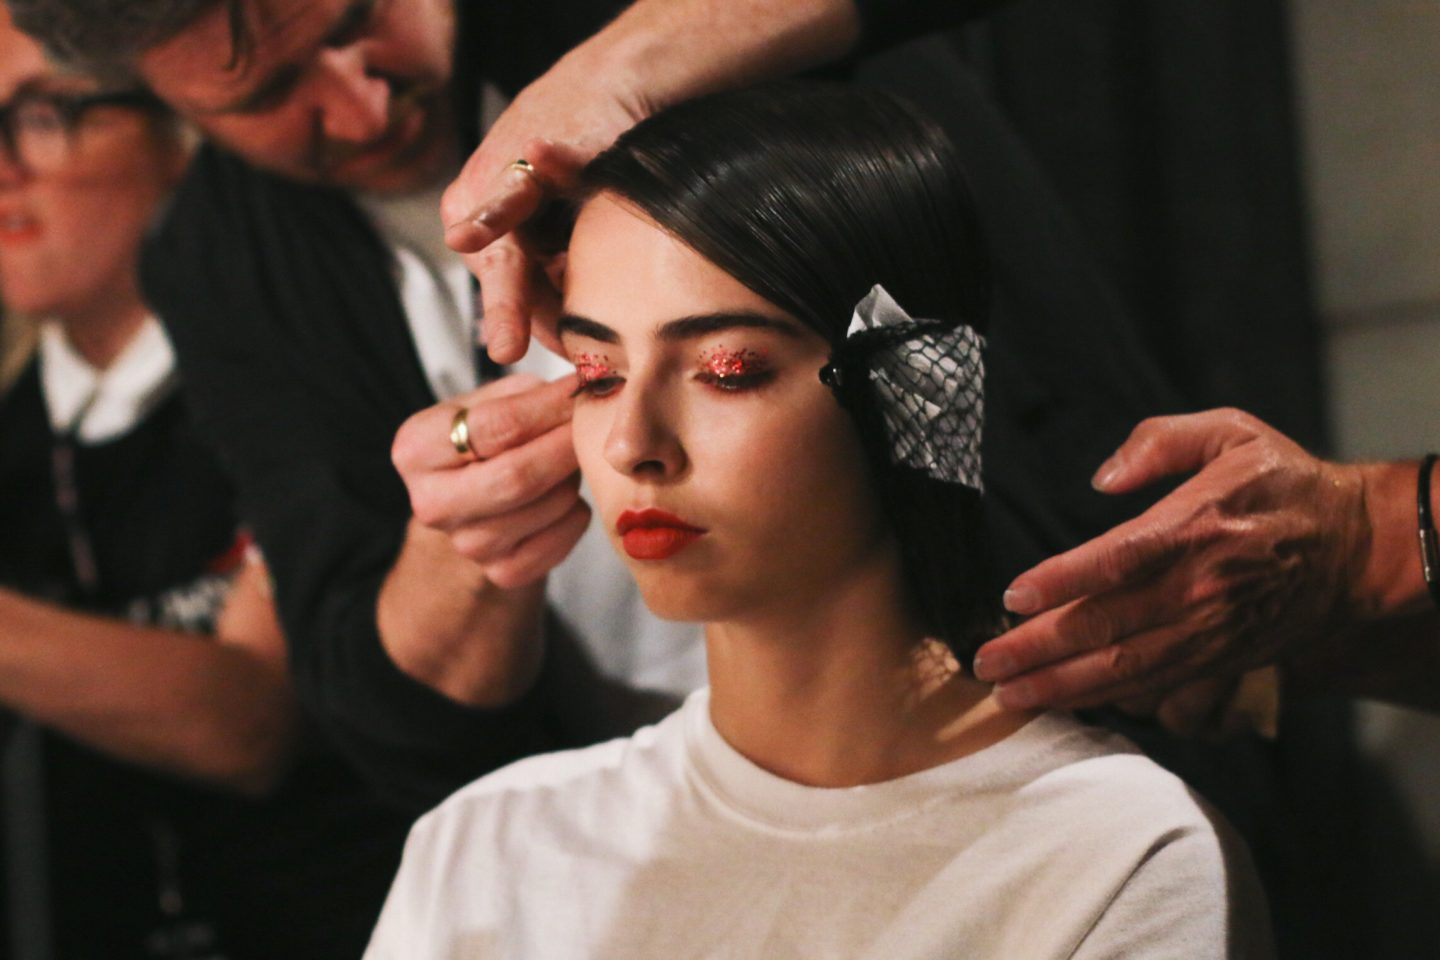 Multitasking with Lipstick | Backstage at Melbourne Fashion Week